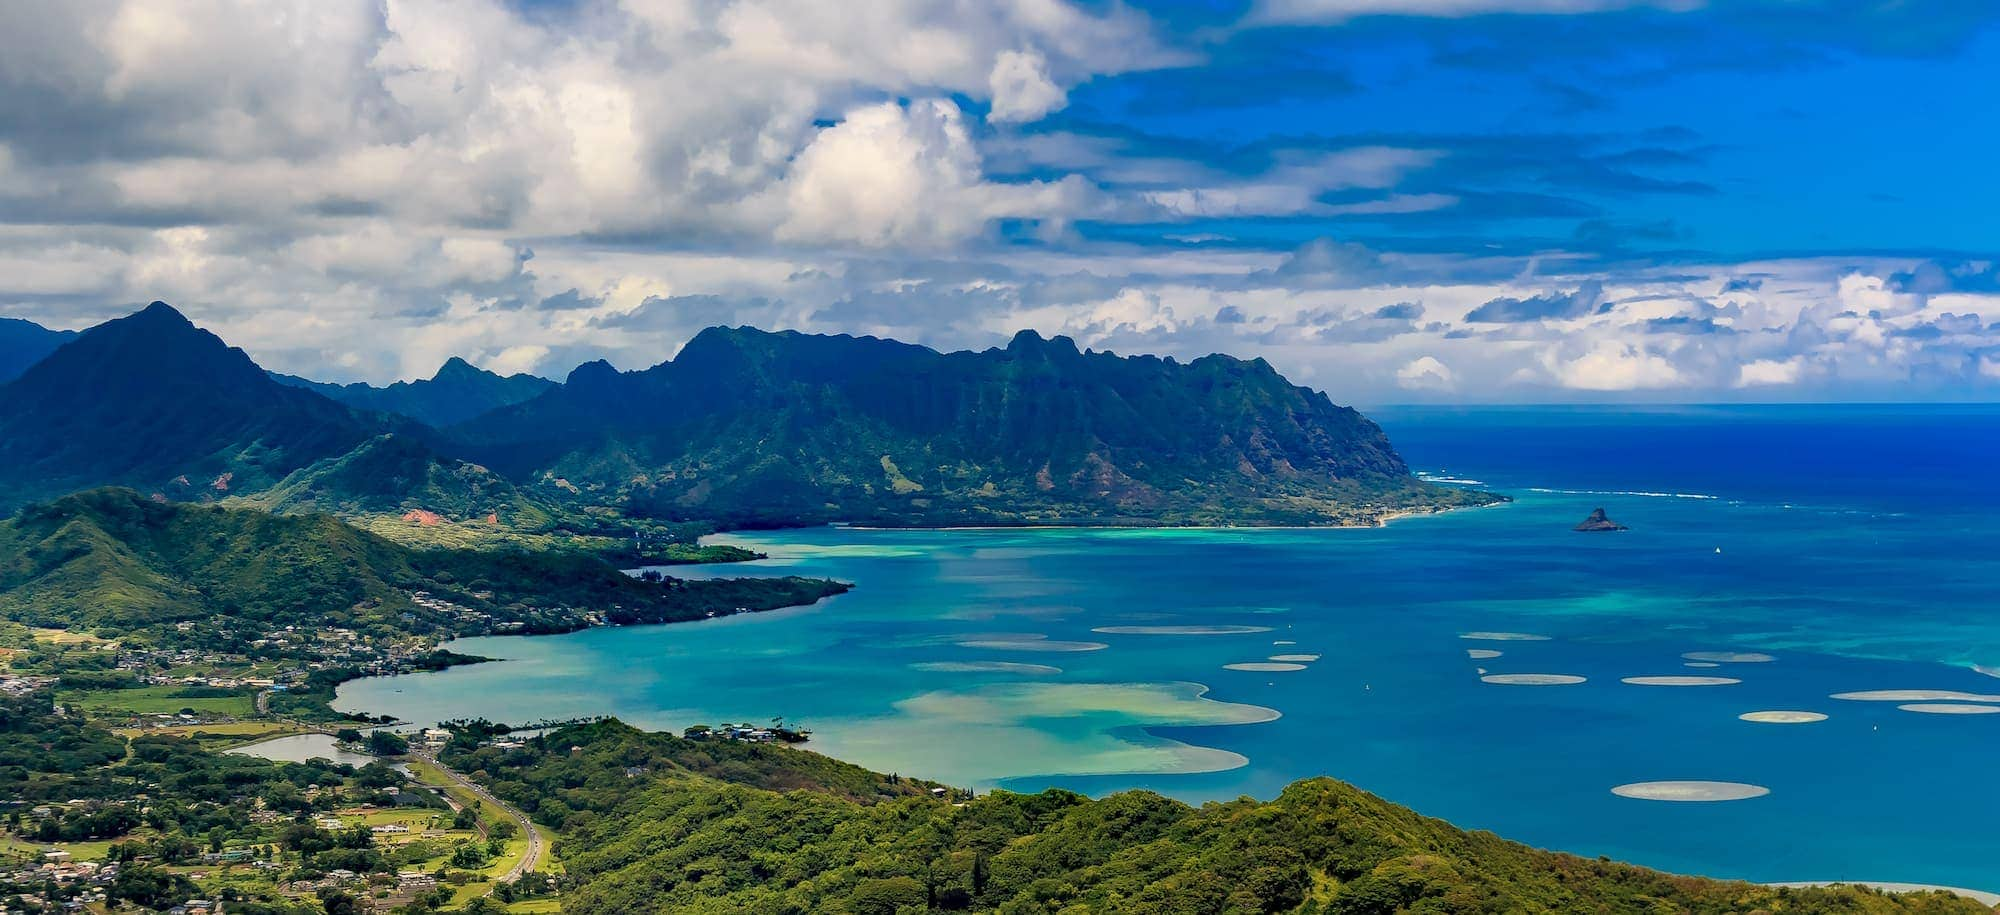 O'ahu's windward (eastern) coast